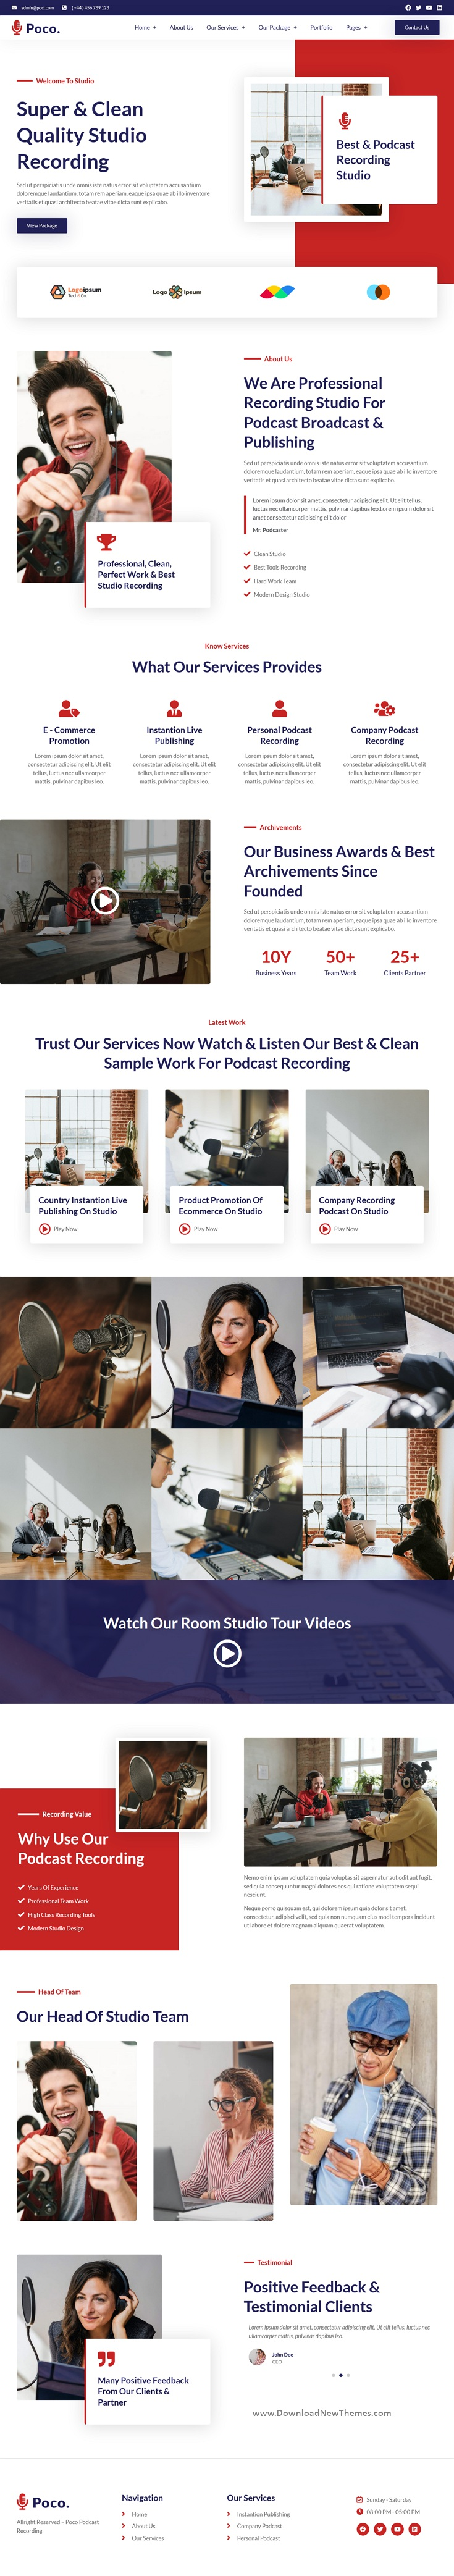 Podcast Recording Studio Services Elementor Template Kit